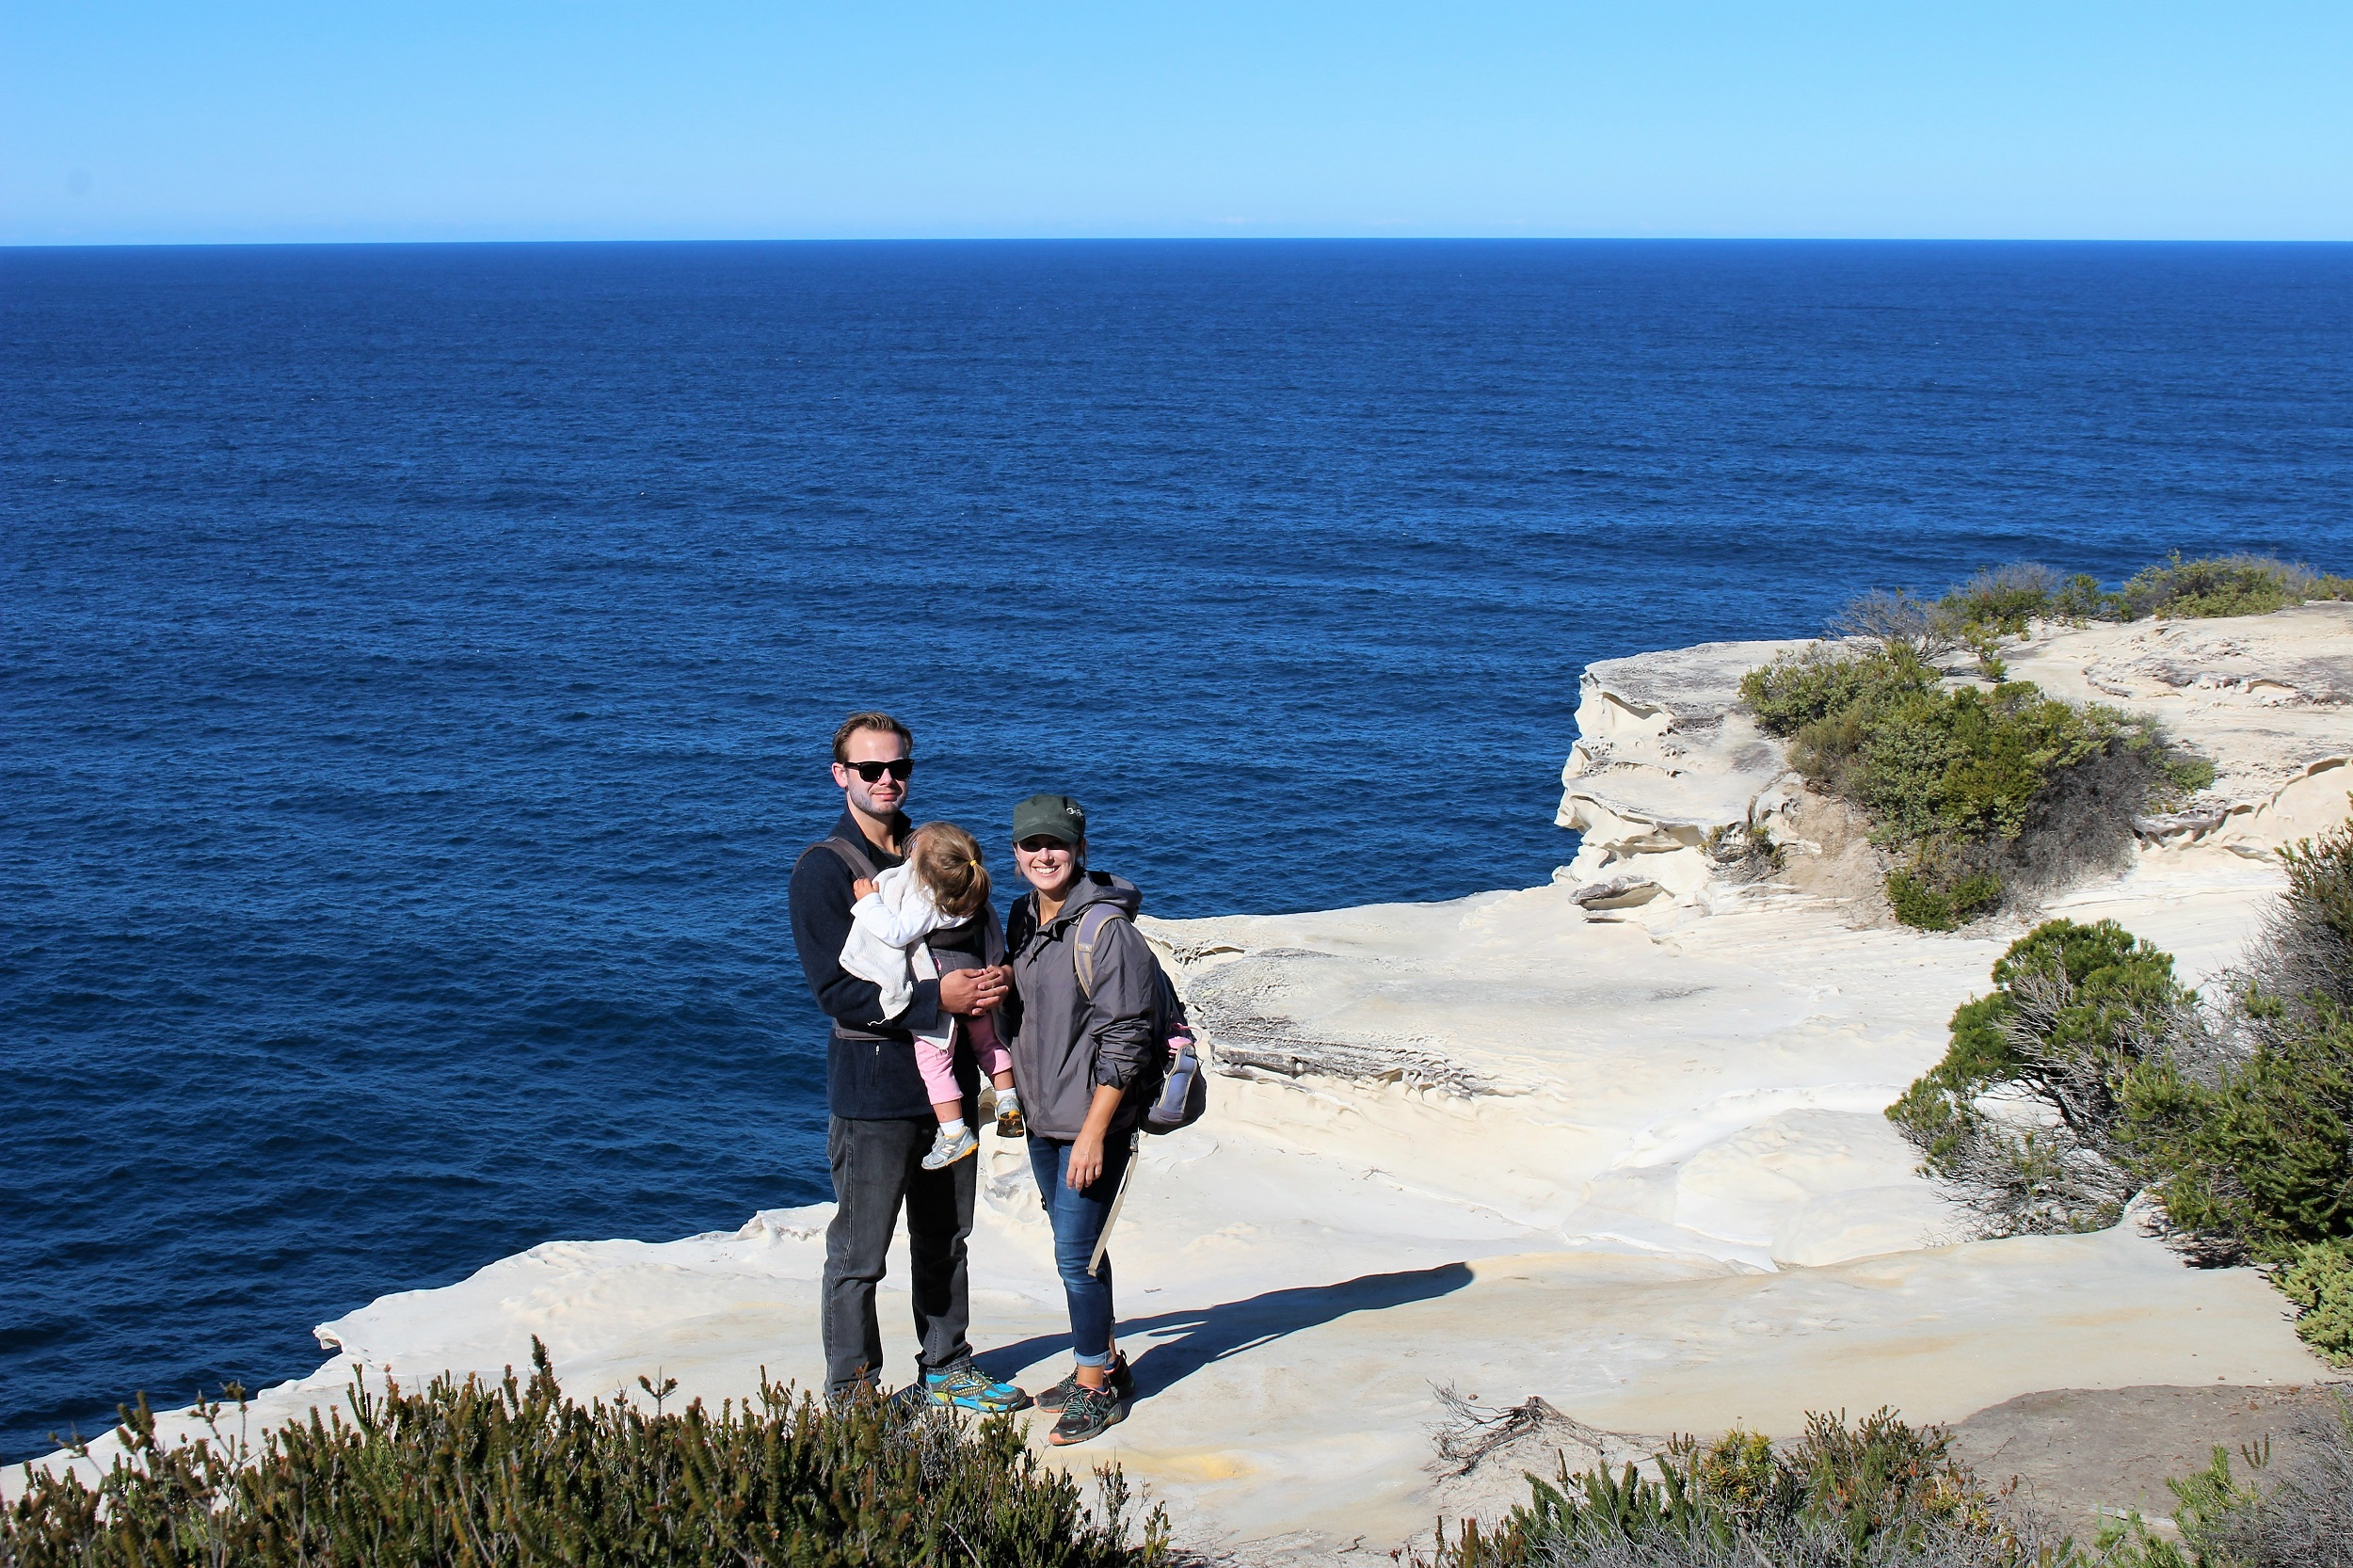 - We truly enjoyed our adventure to The Royal National Park with Greg. He was very flexible with our itinerary, as we were traveling with our toddler daughter, and made adjustments for us along the way. The scenic hike with lookouts along the coast was beautiful, and we even saw some whales offshore! Greg showed us a lot of nice viewpoints in the park, and packed a picnic lunch for us which we ate at a small town beach where our daughter could swim. It was very convenient to travel with him as he picked us right up and dropped us off at our hotel, did as little or as much as we wanted, and offered advice on sites to see and places to eat. We couldn't have asked for a better guide and driver for our National Park Adventure. You will enjoy his company, and knowledge about the park, his awesome photography skills, and also get to listen to some nice indigenous music. Have fun!Katie and Don, July 2019